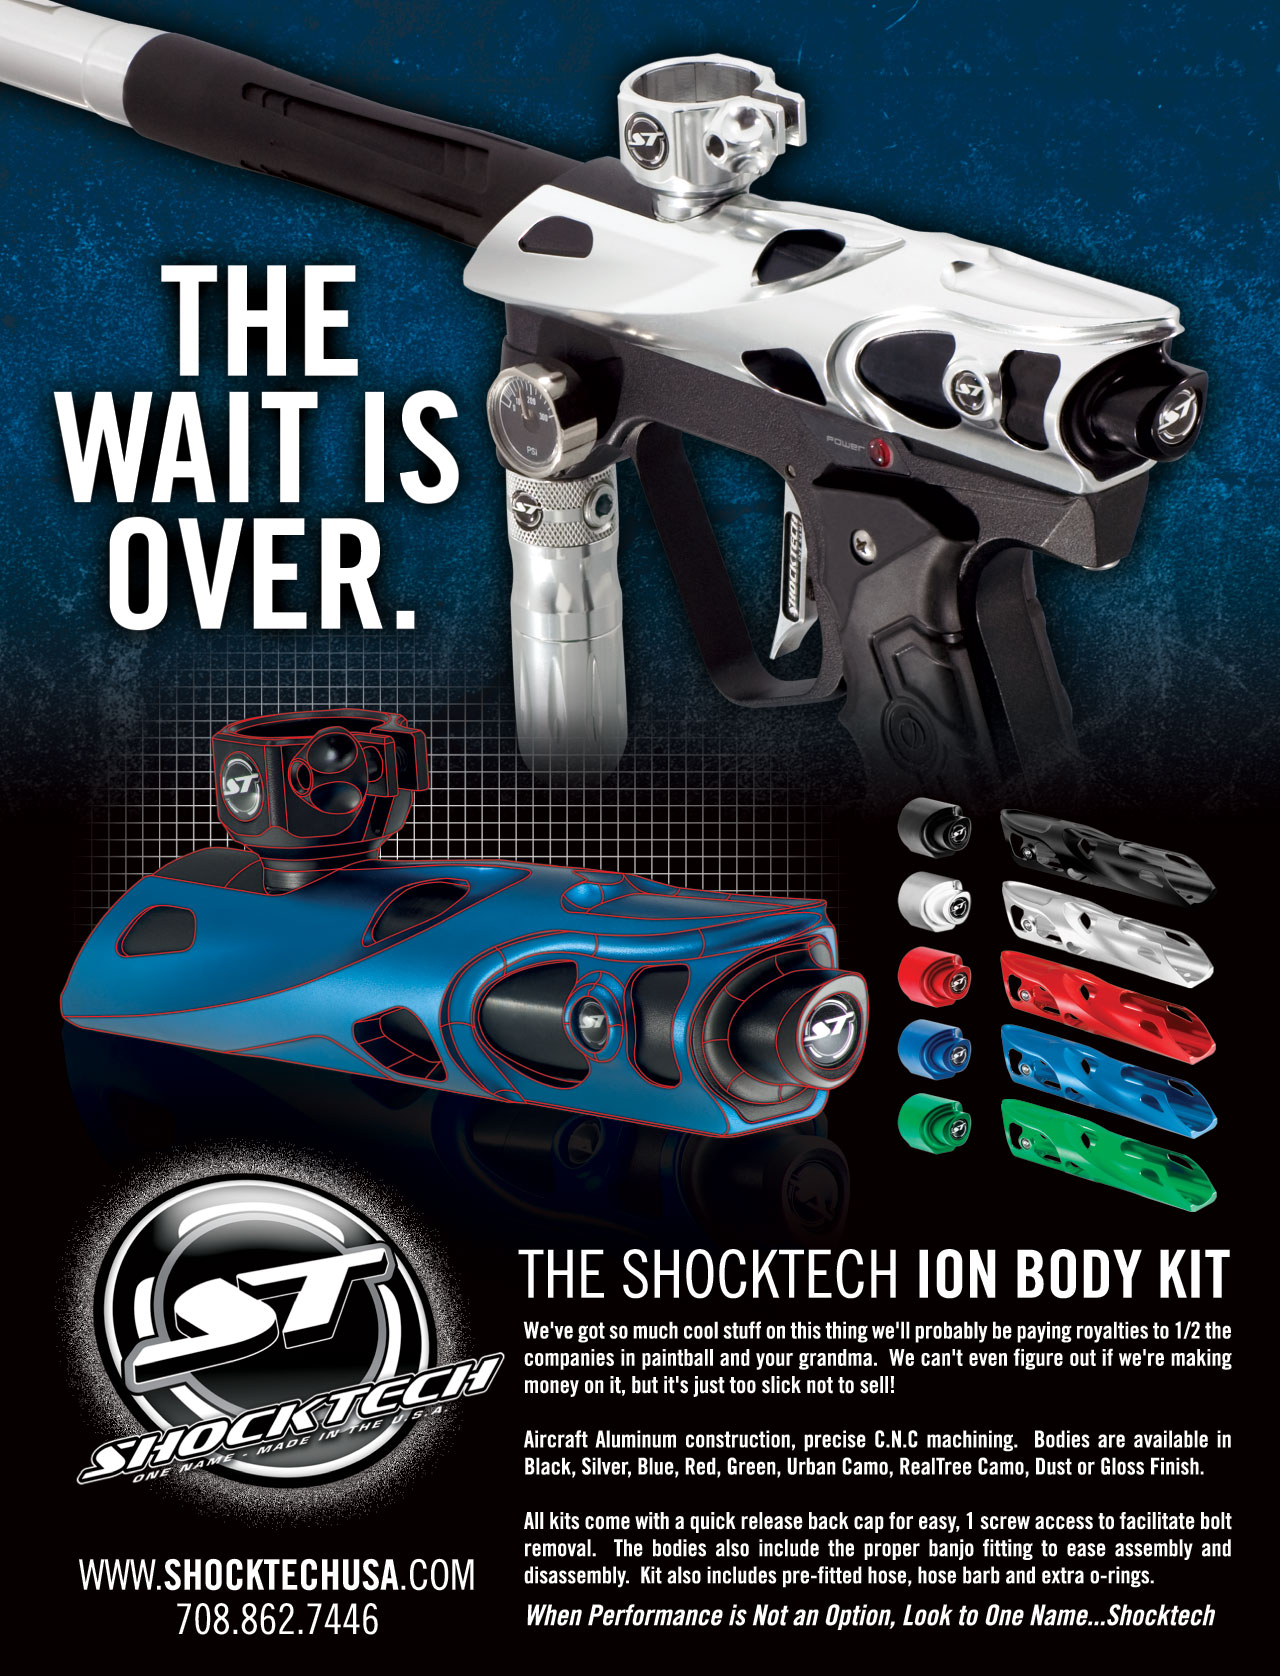 shocktech magazine advertisement